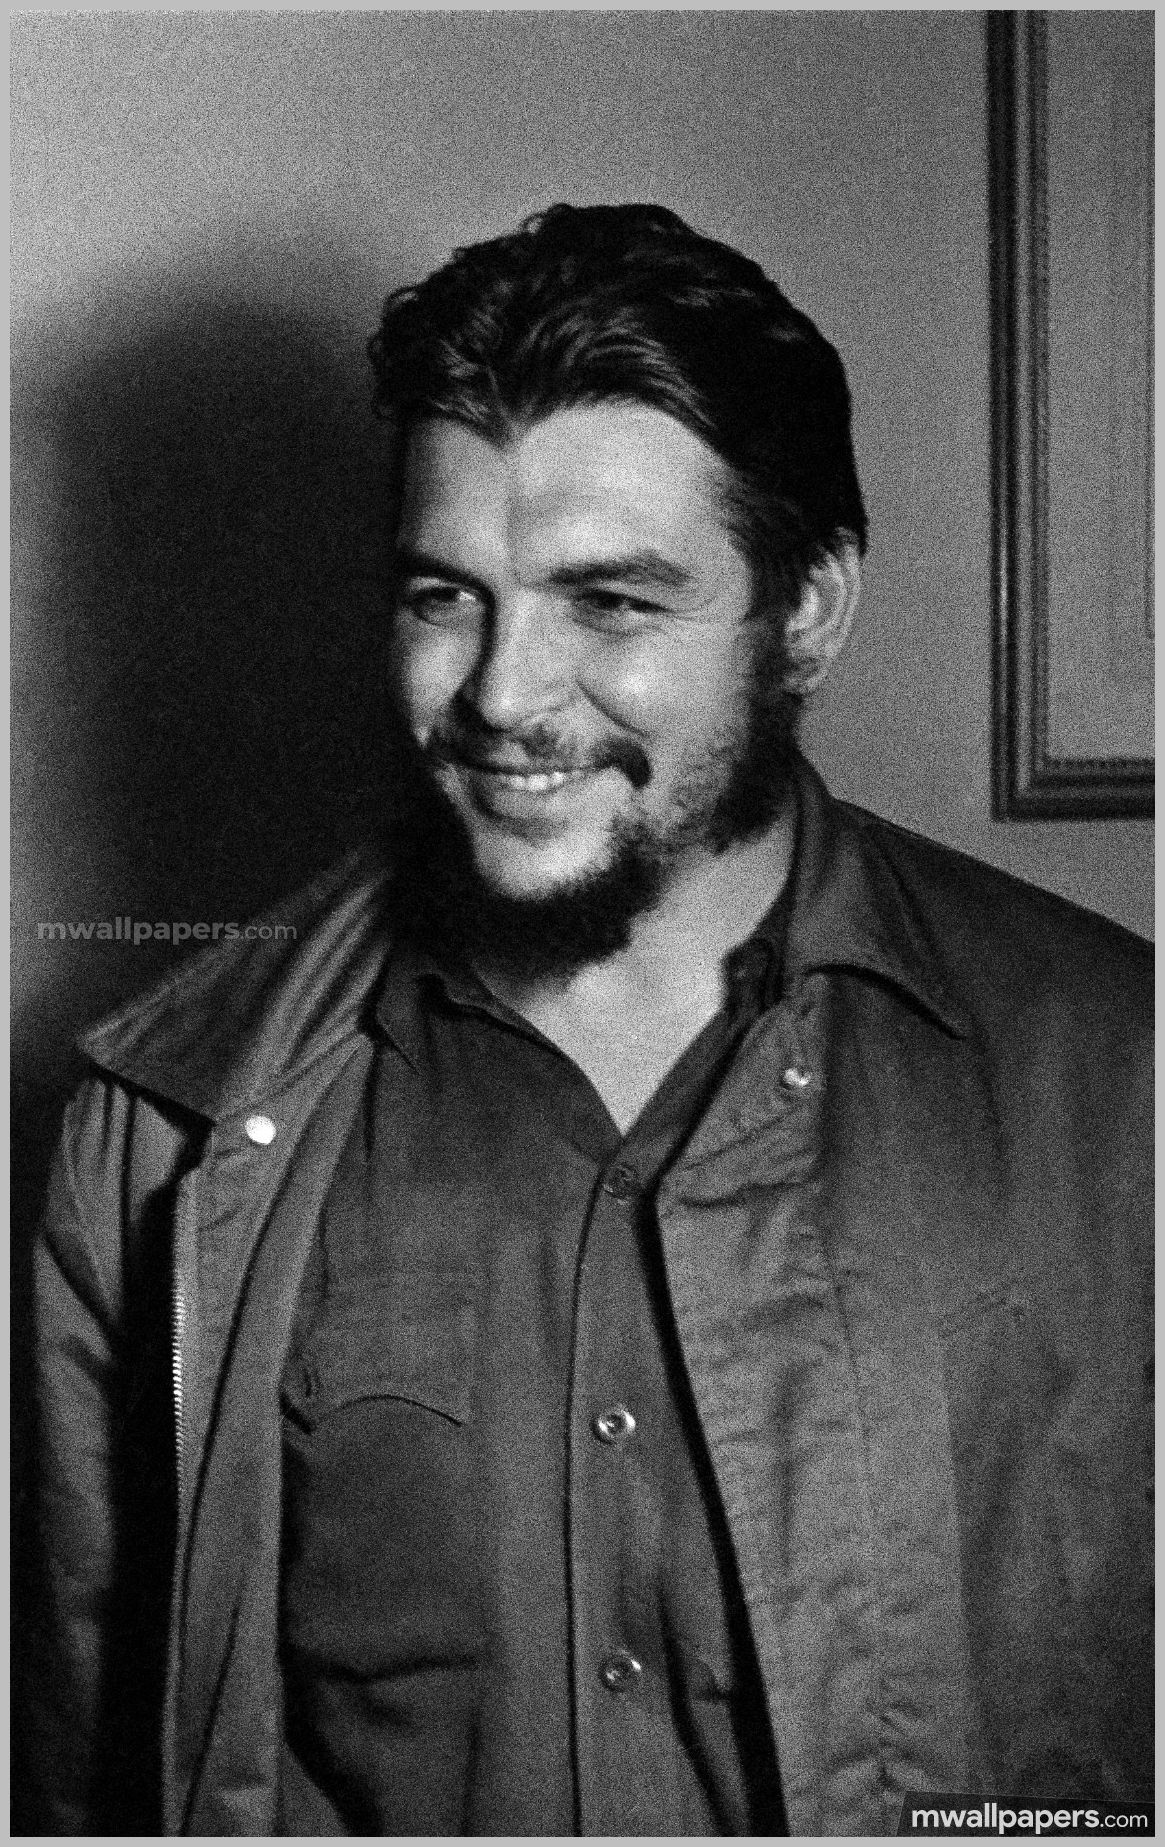 Che Guevara Wallpapers Hd Best Hd Photos 1080p 1175 Cheguevara